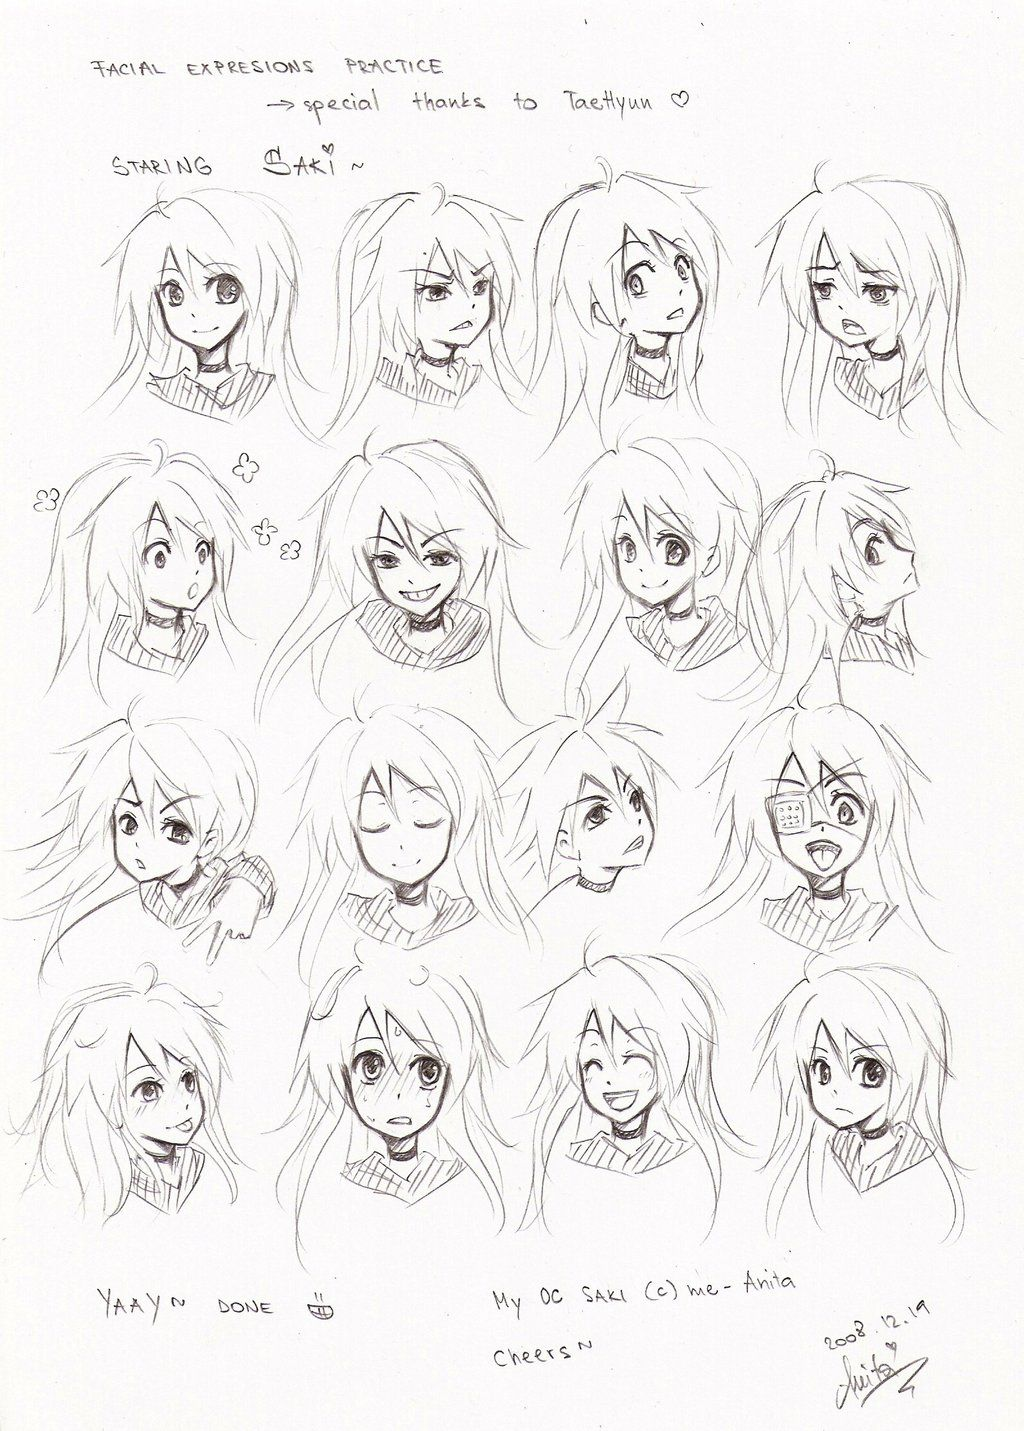 facial expressions practice by